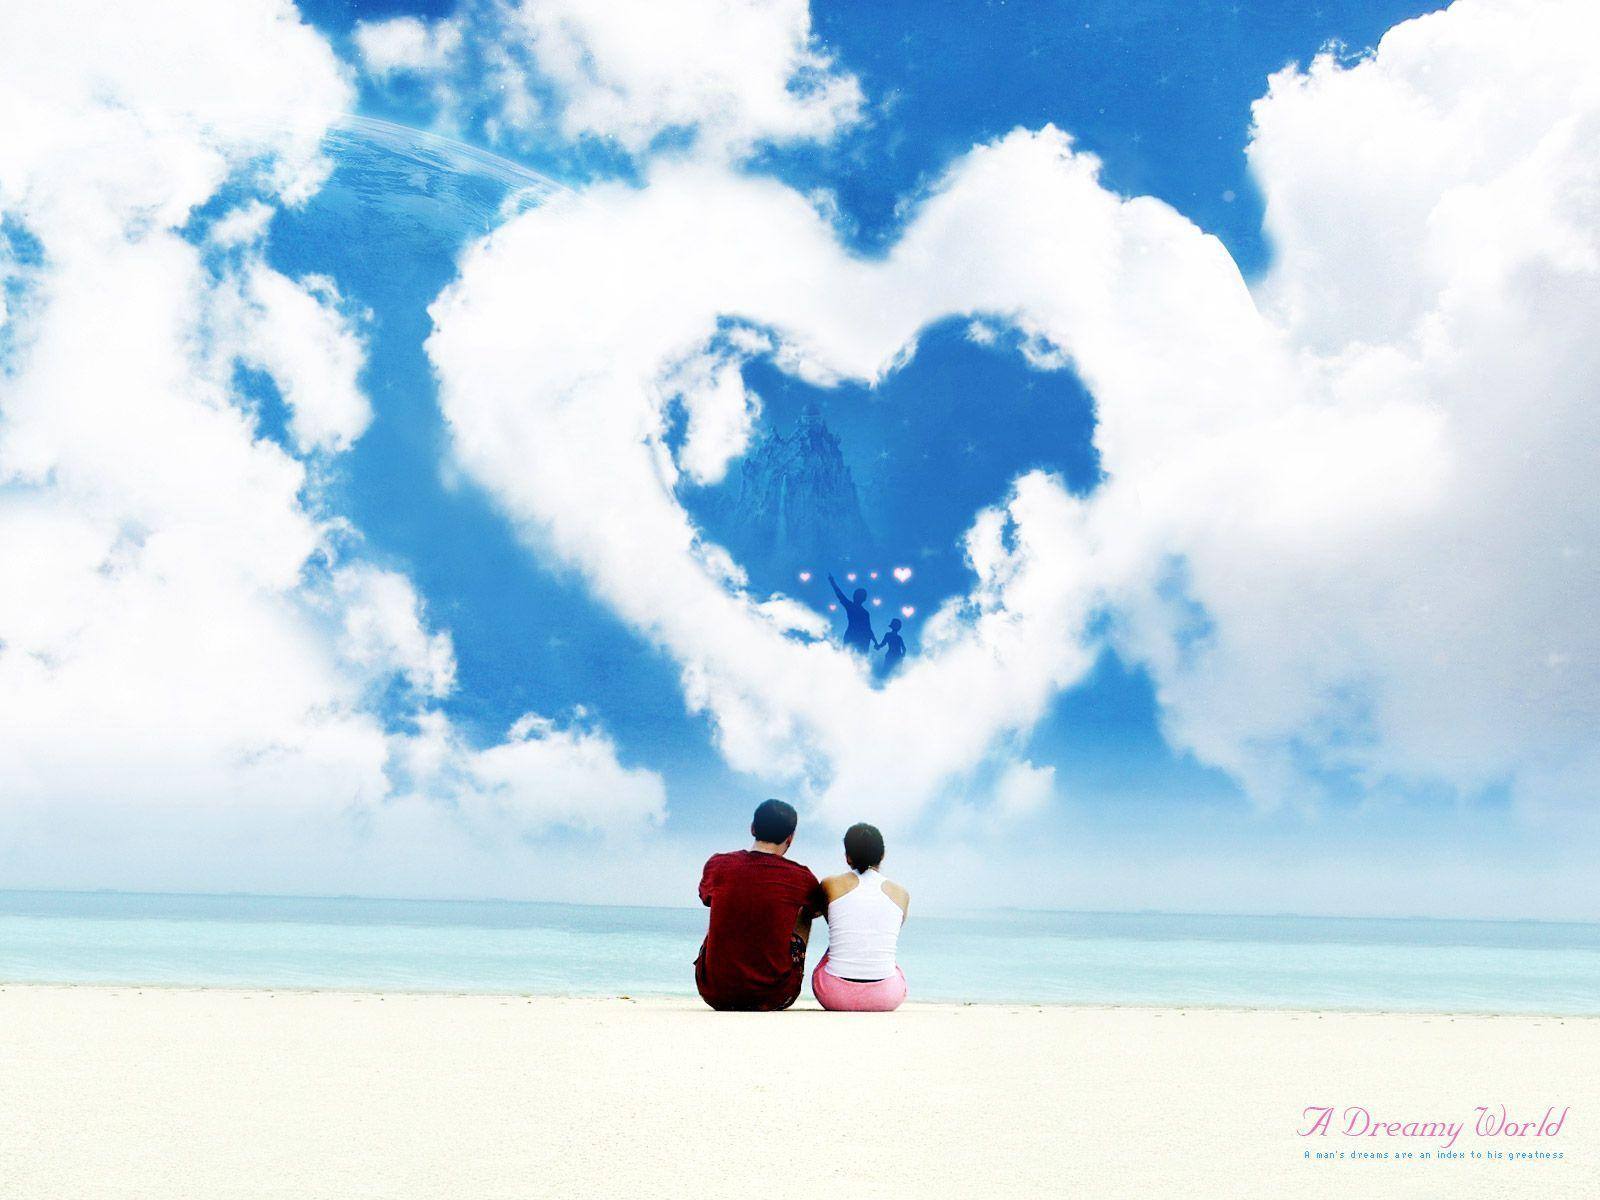 Lovers Images Wallpapers 1600x1200